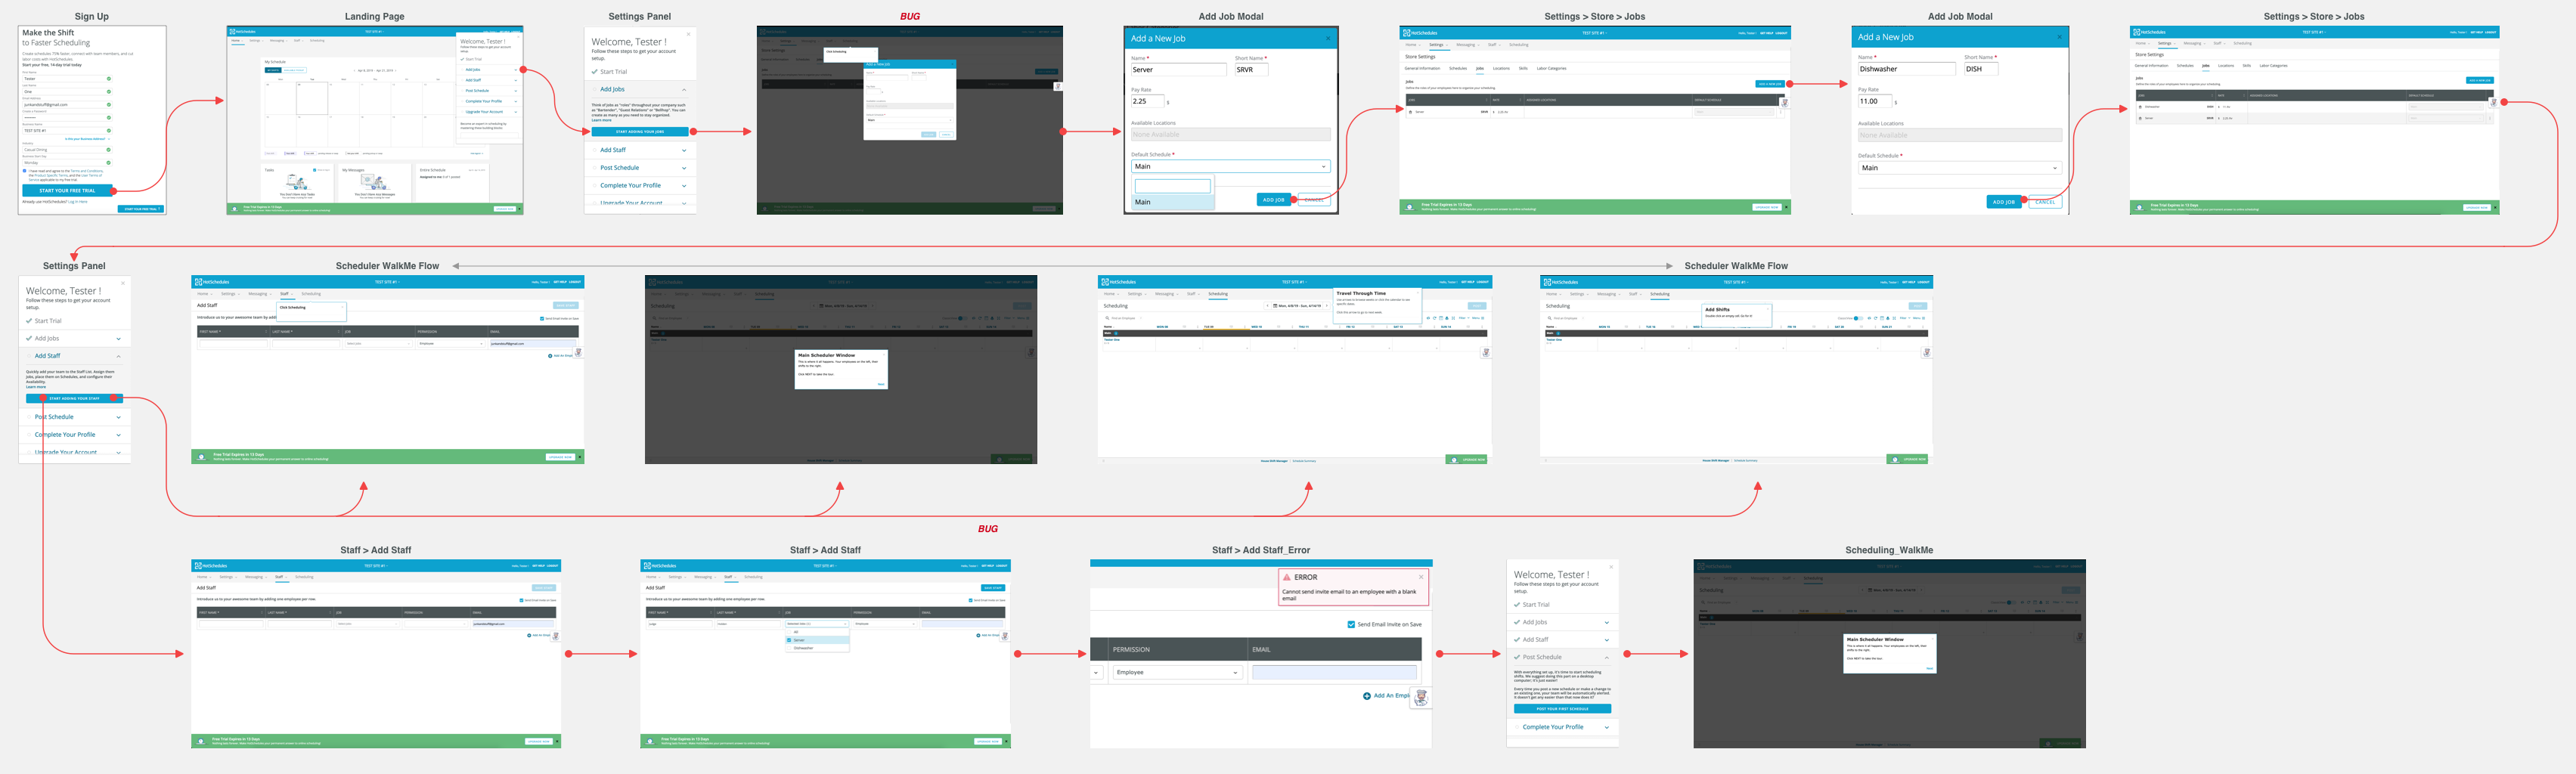 Audit of user flow for Essentials Onboarding